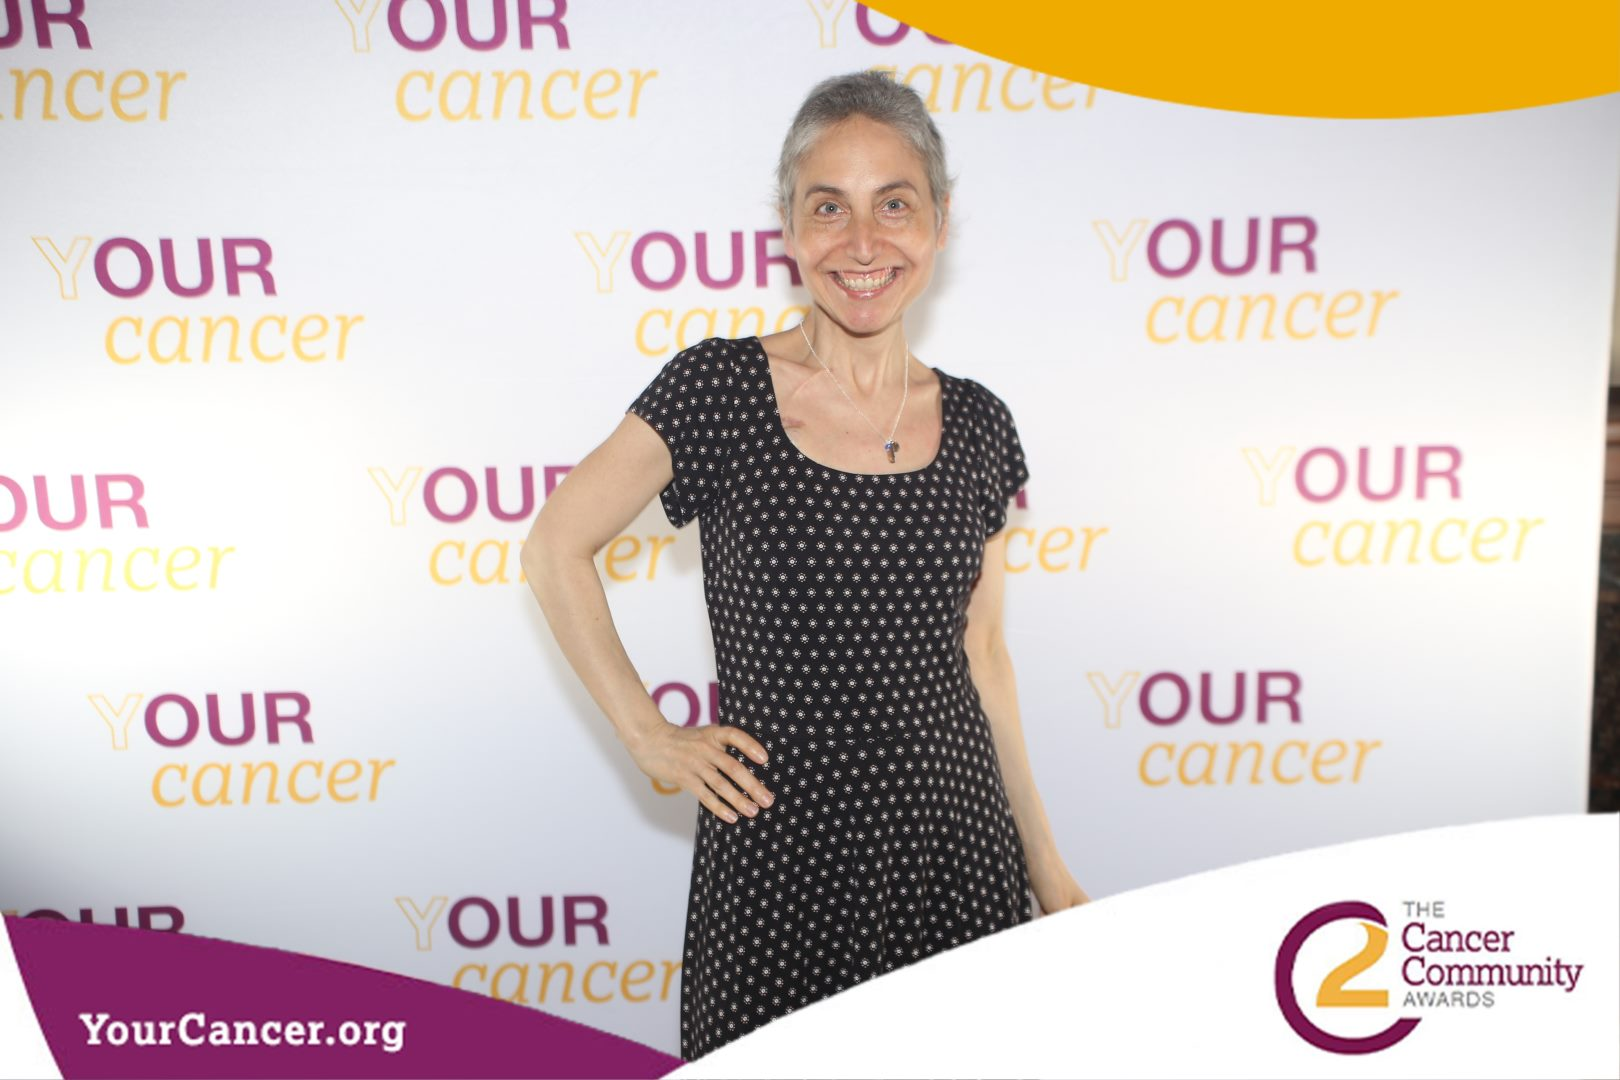 At the Cancer Community (C2) Awards at the New York Public Library 5/2/19